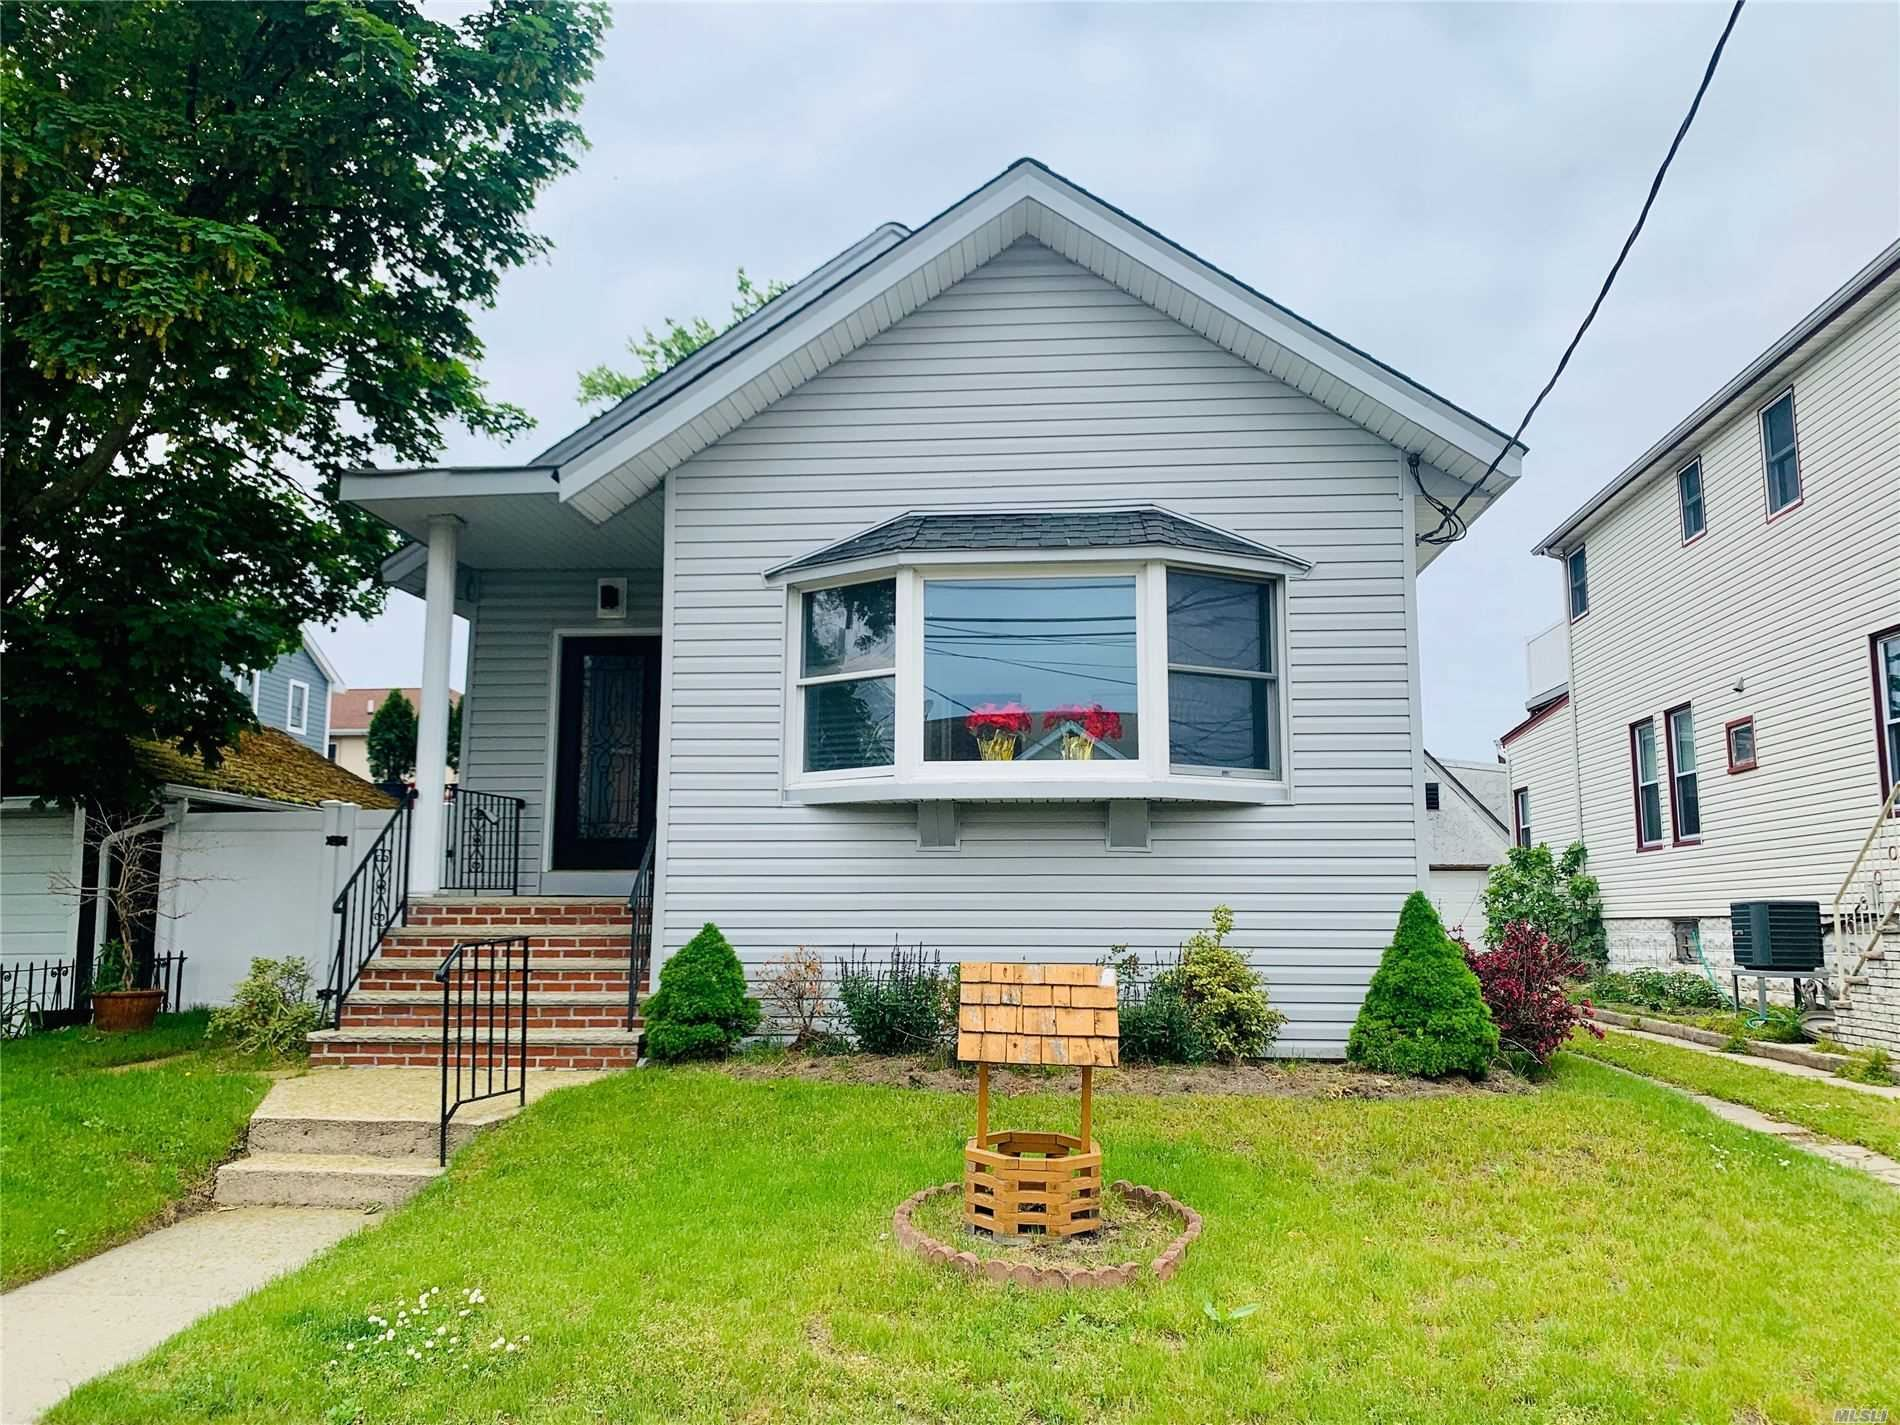 162-44 99th Street, Howard Beach, NY 11414 - MLS#: 3217496